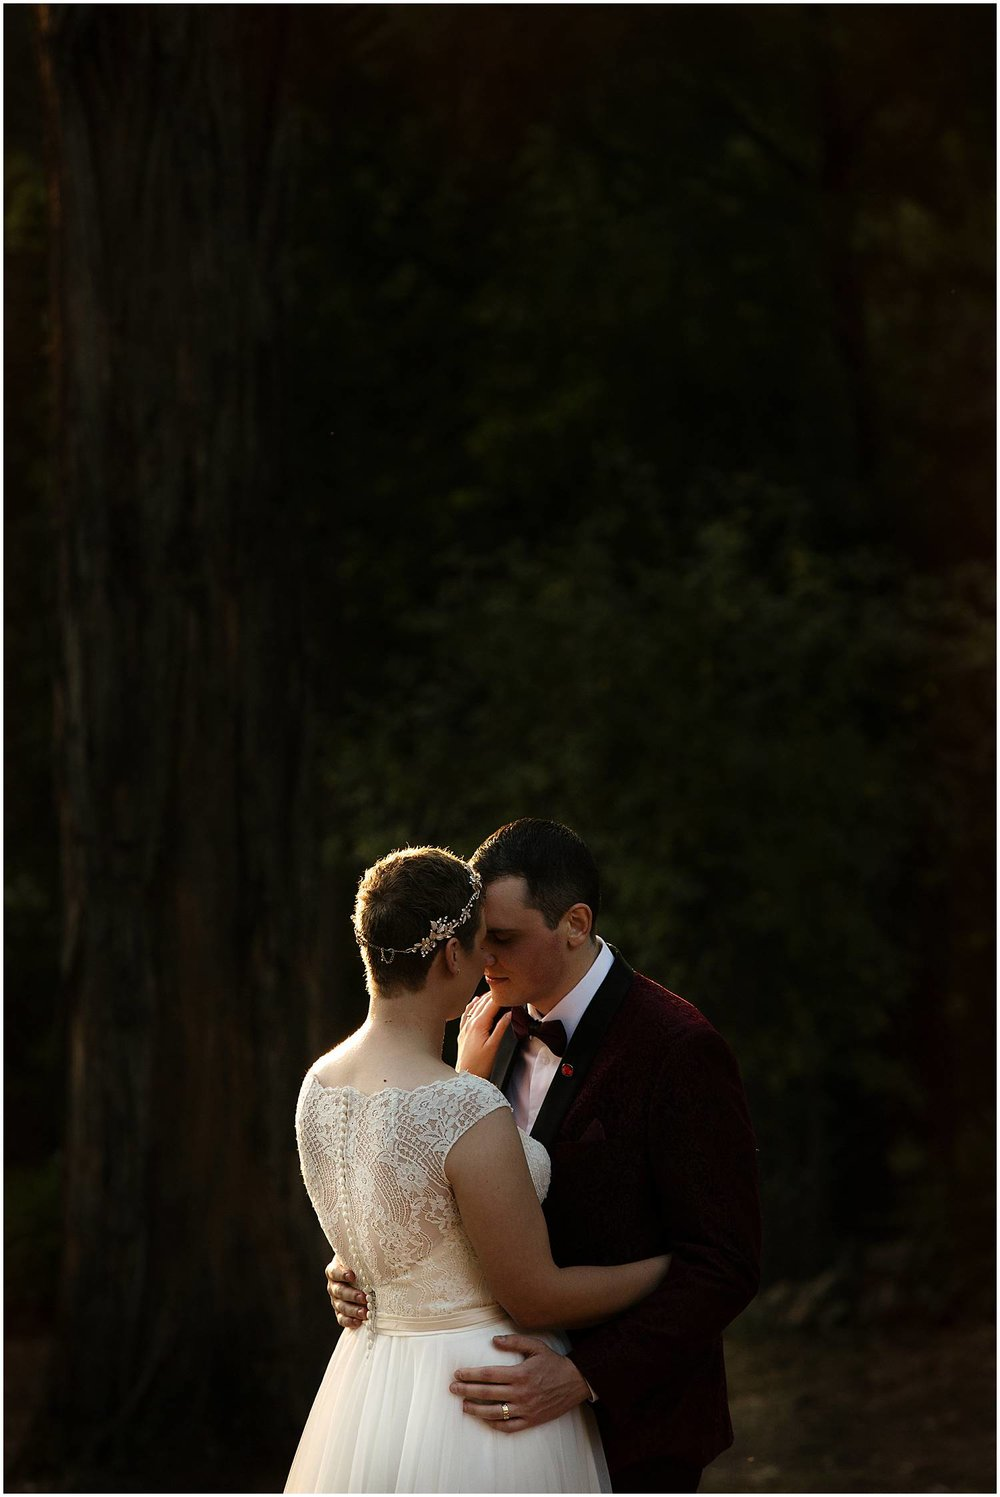 natural wedding photography melbourne 011.jpg